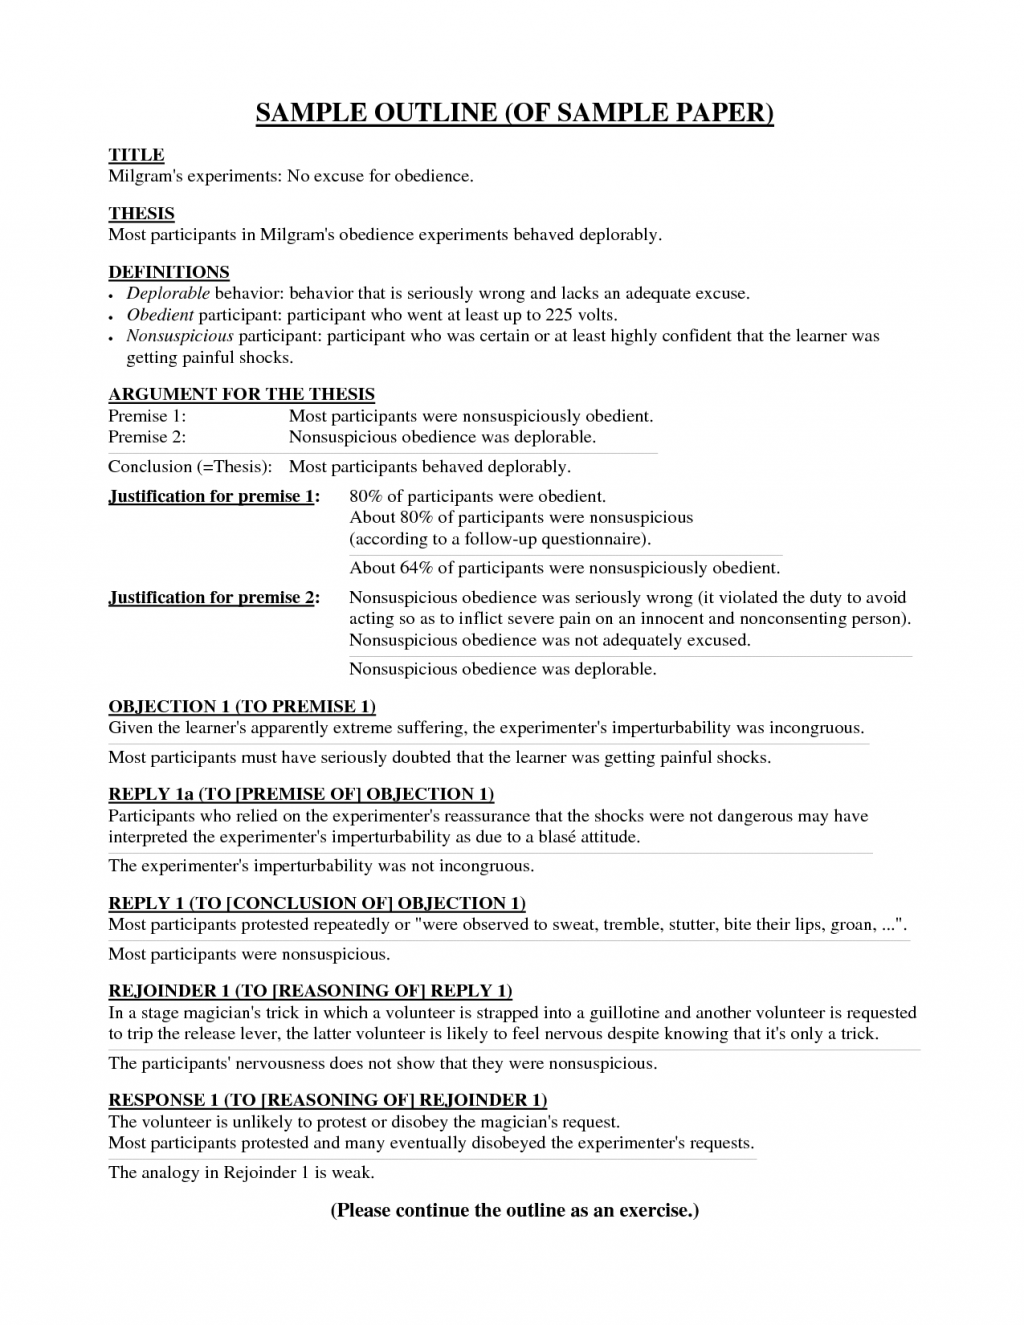 023 20example Essay Layout Thesis Paper Outline Picture Resume Examples Of Outlines For Research Papers Inpa Format20 1024x1325 How To Write Wonderful A Apa Style Full